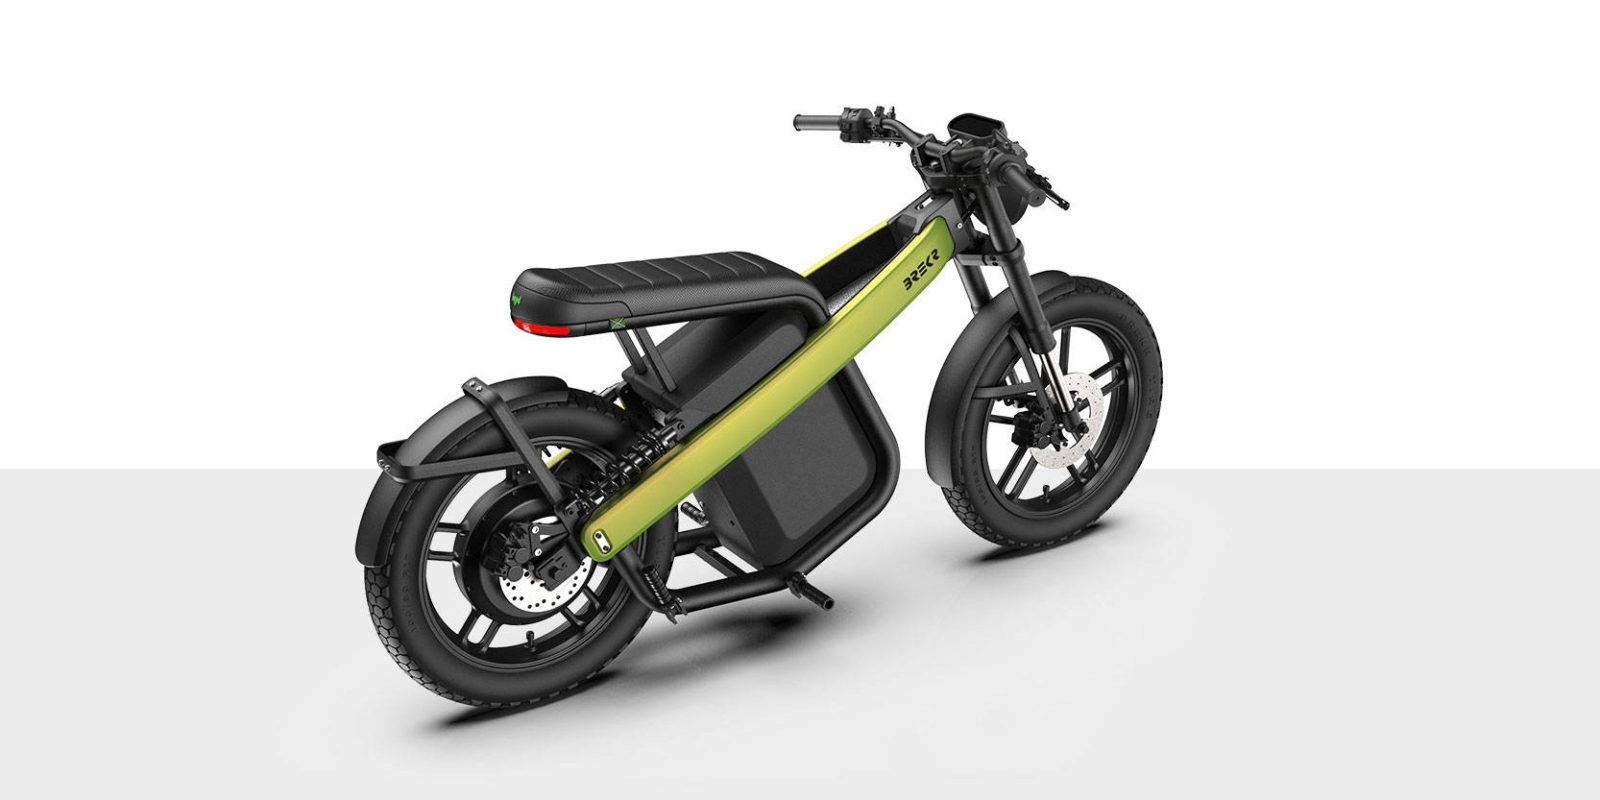 New Dutch electric moped gets dual batteries and up to 100 miles of range